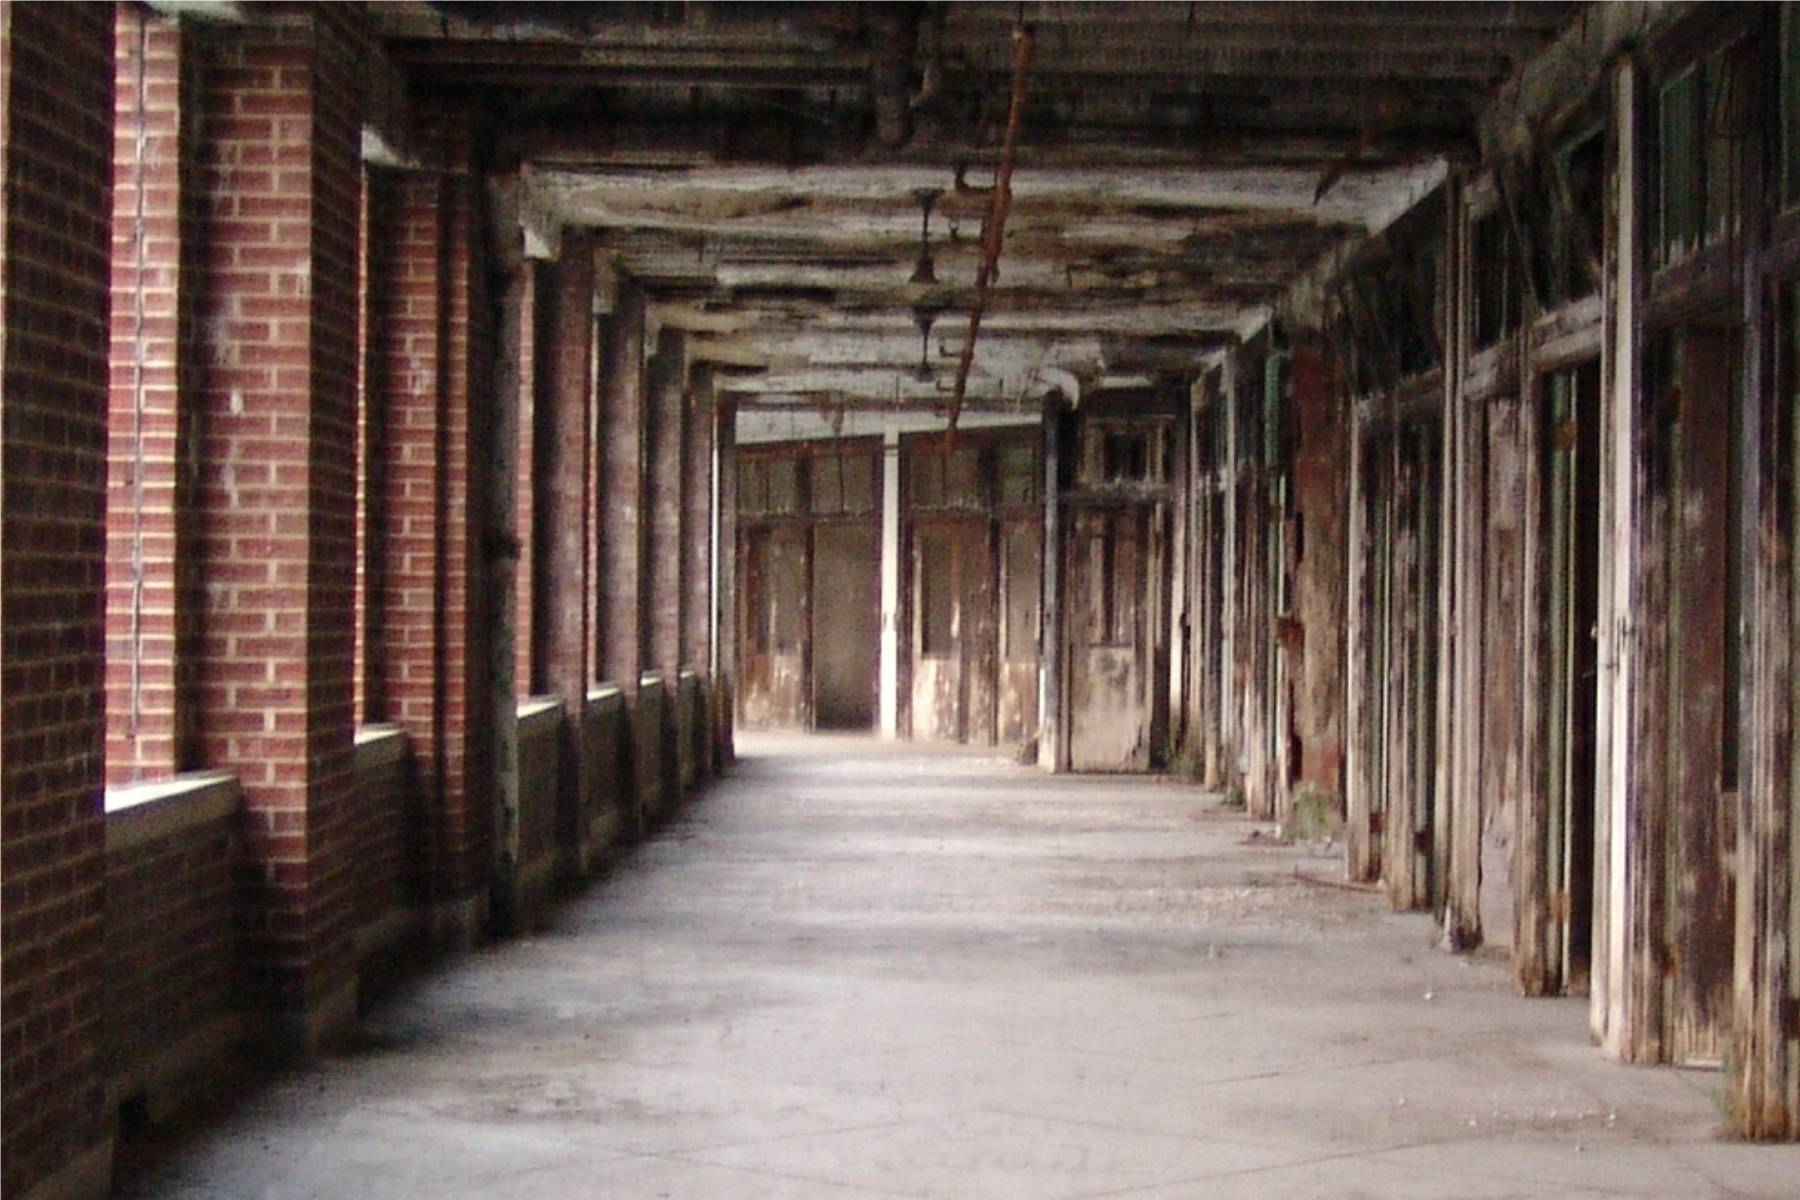 Waverly Hills Sanatorium Photographs